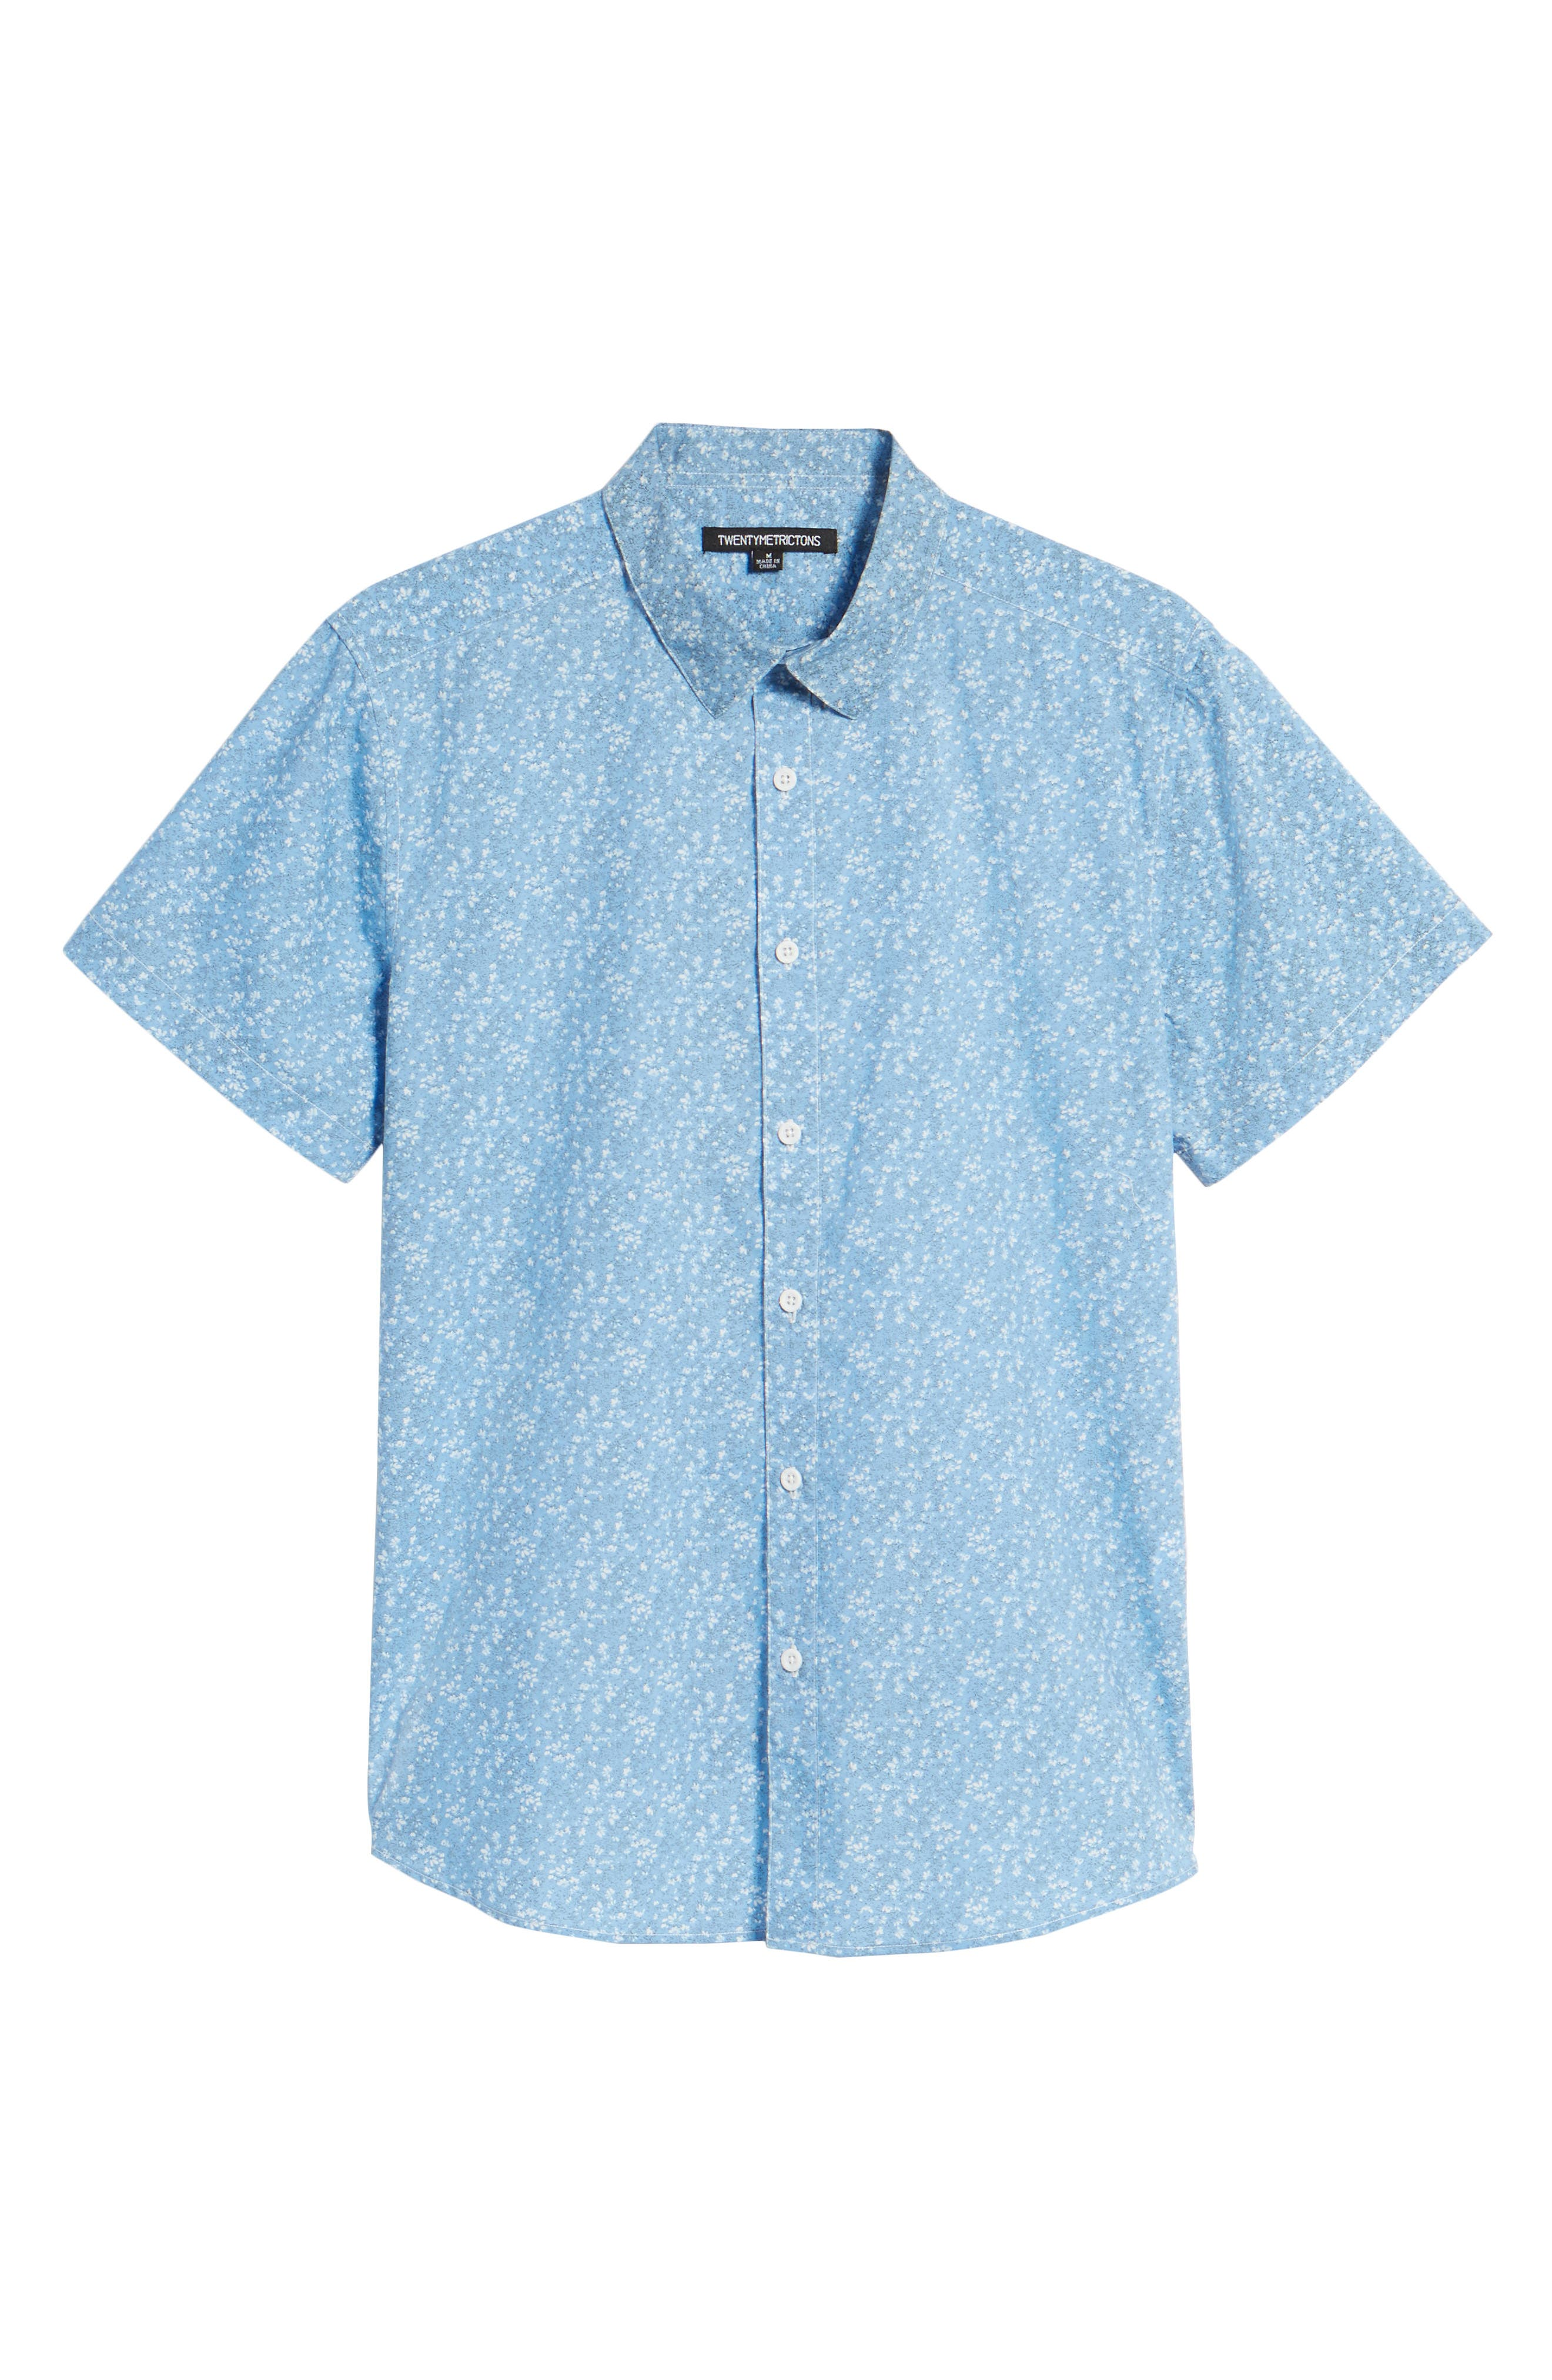 Print Woven Short Sleeve Shirt,                             Alternate thumbnail 6, color,                             463